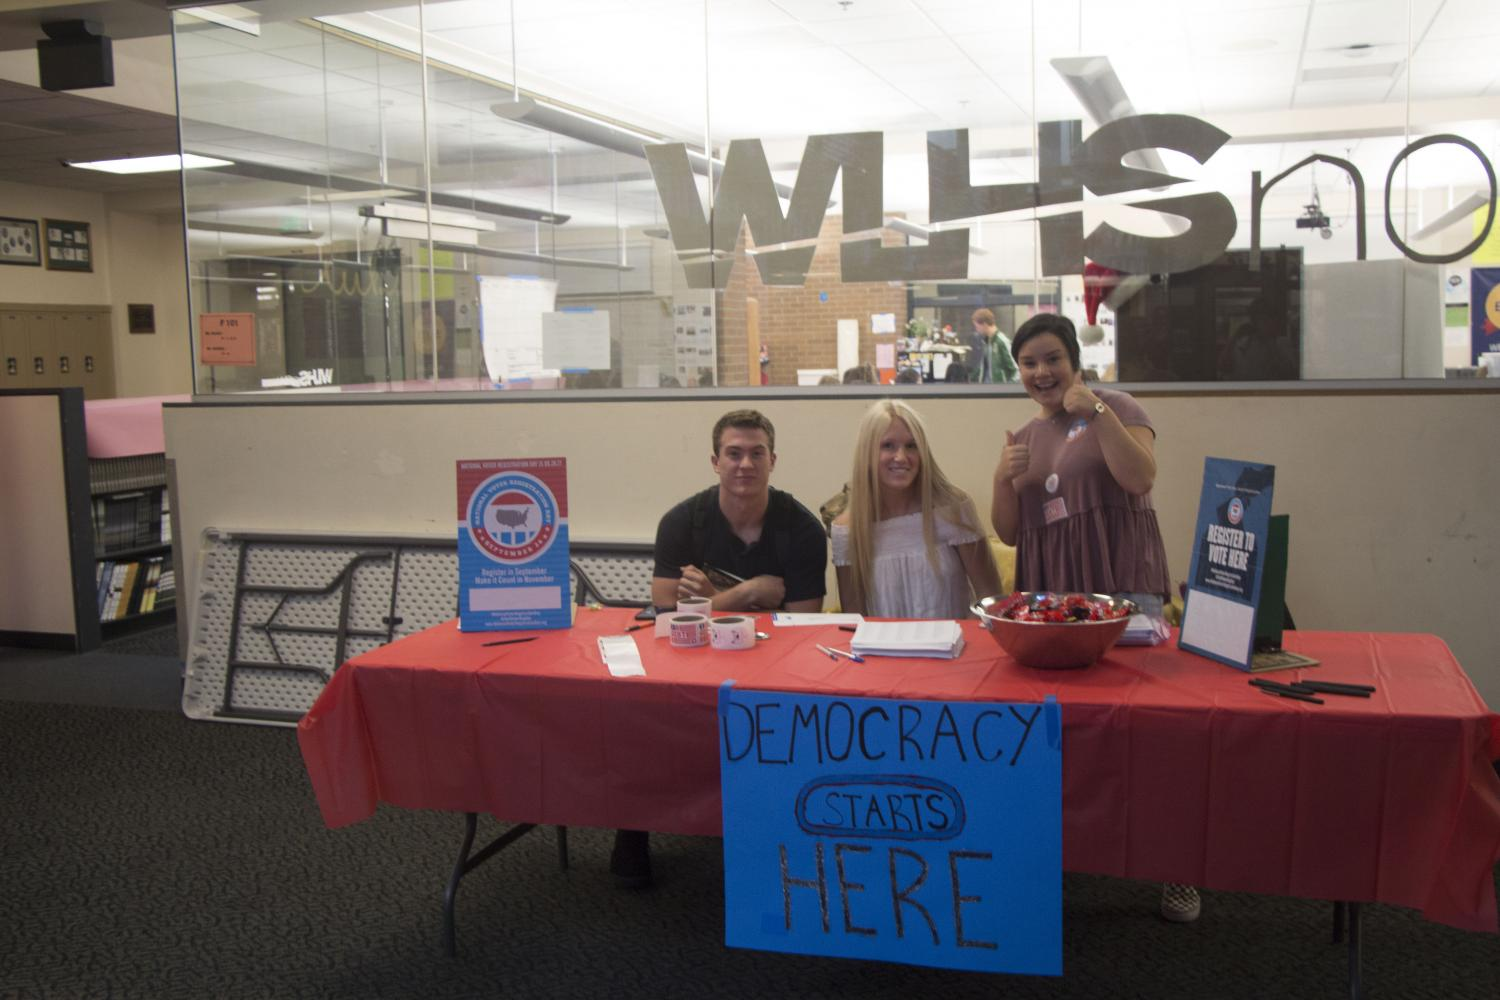 Students working with the Bus Project, armed with stickers and candy, await eager voters-to-be. From left to right: Zack Huffstutter, senior; Haley Thayer, senior; Skylar Kool, senior.